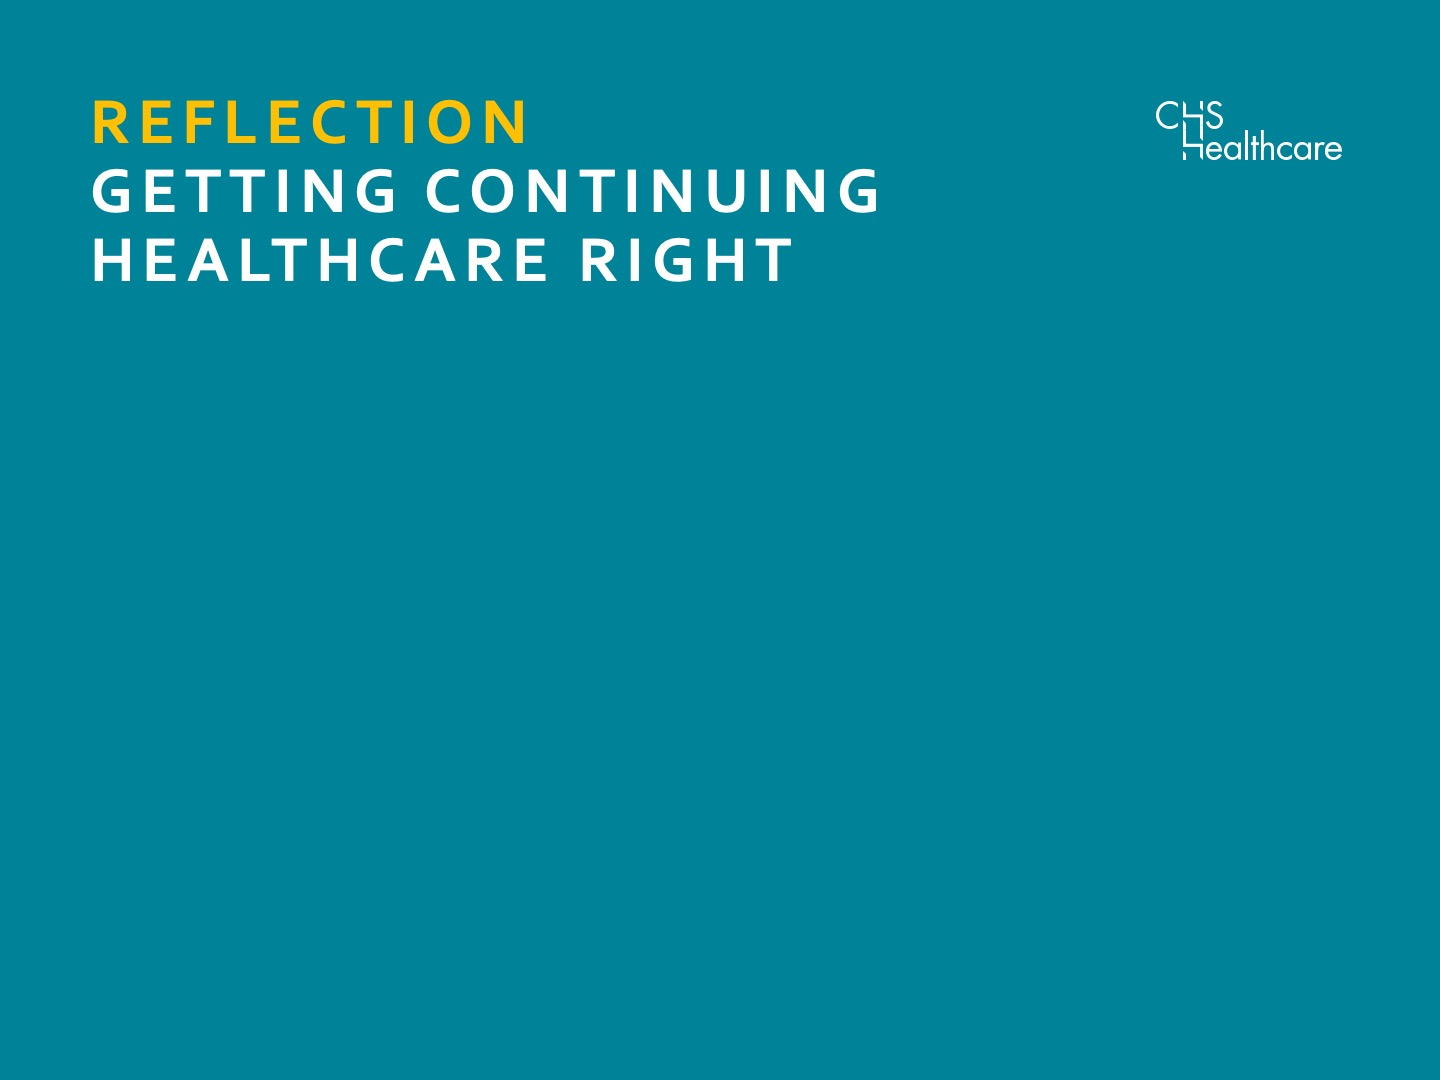 """Reflection on """"Getting Continuing Healthcare Right"""""""